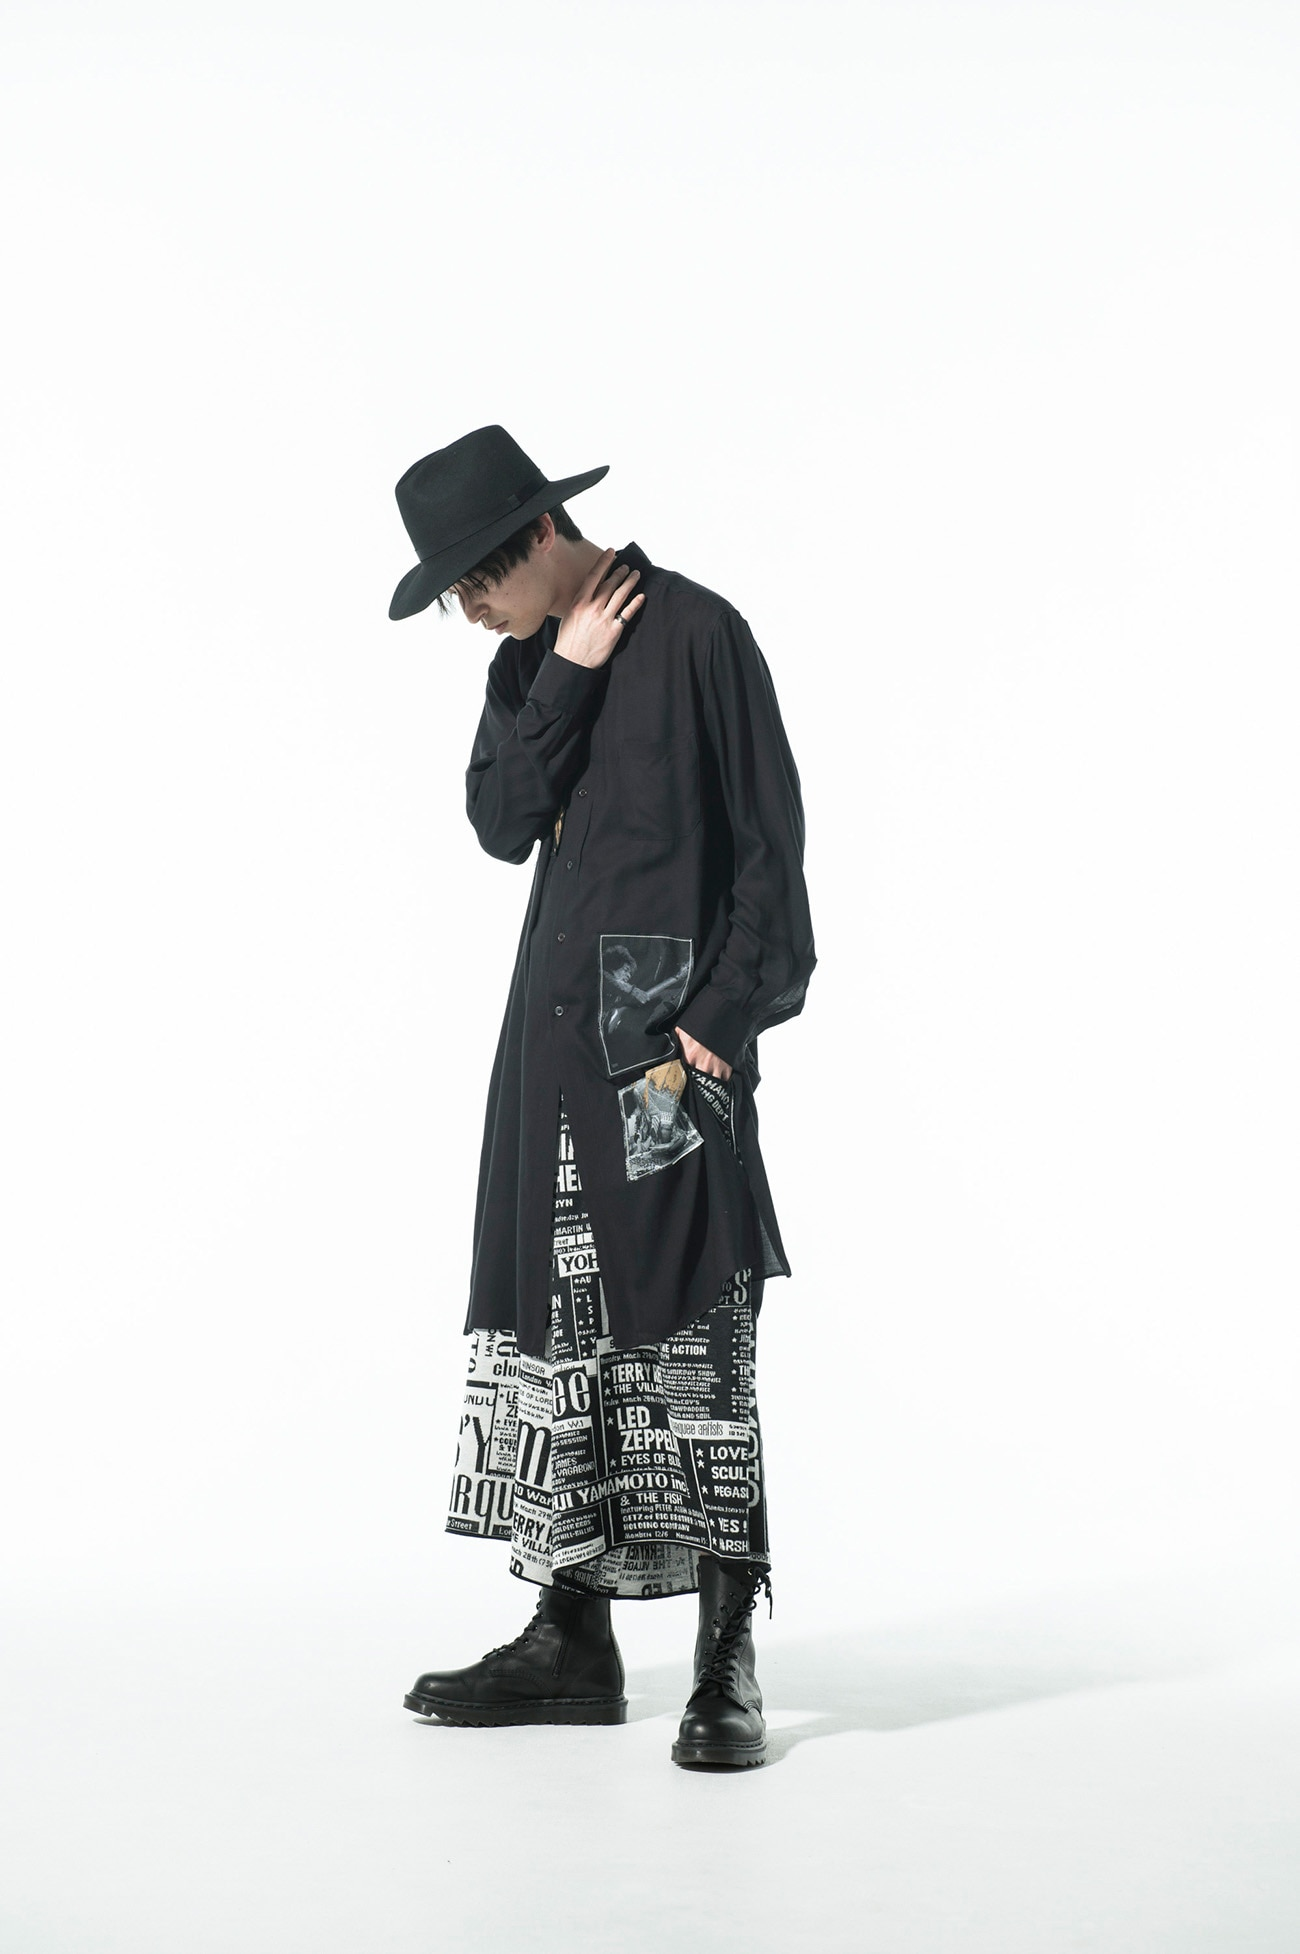 S'YTE × marquee club(TM) Newspaper Collage Hameauze Jacquard Culottes Pants